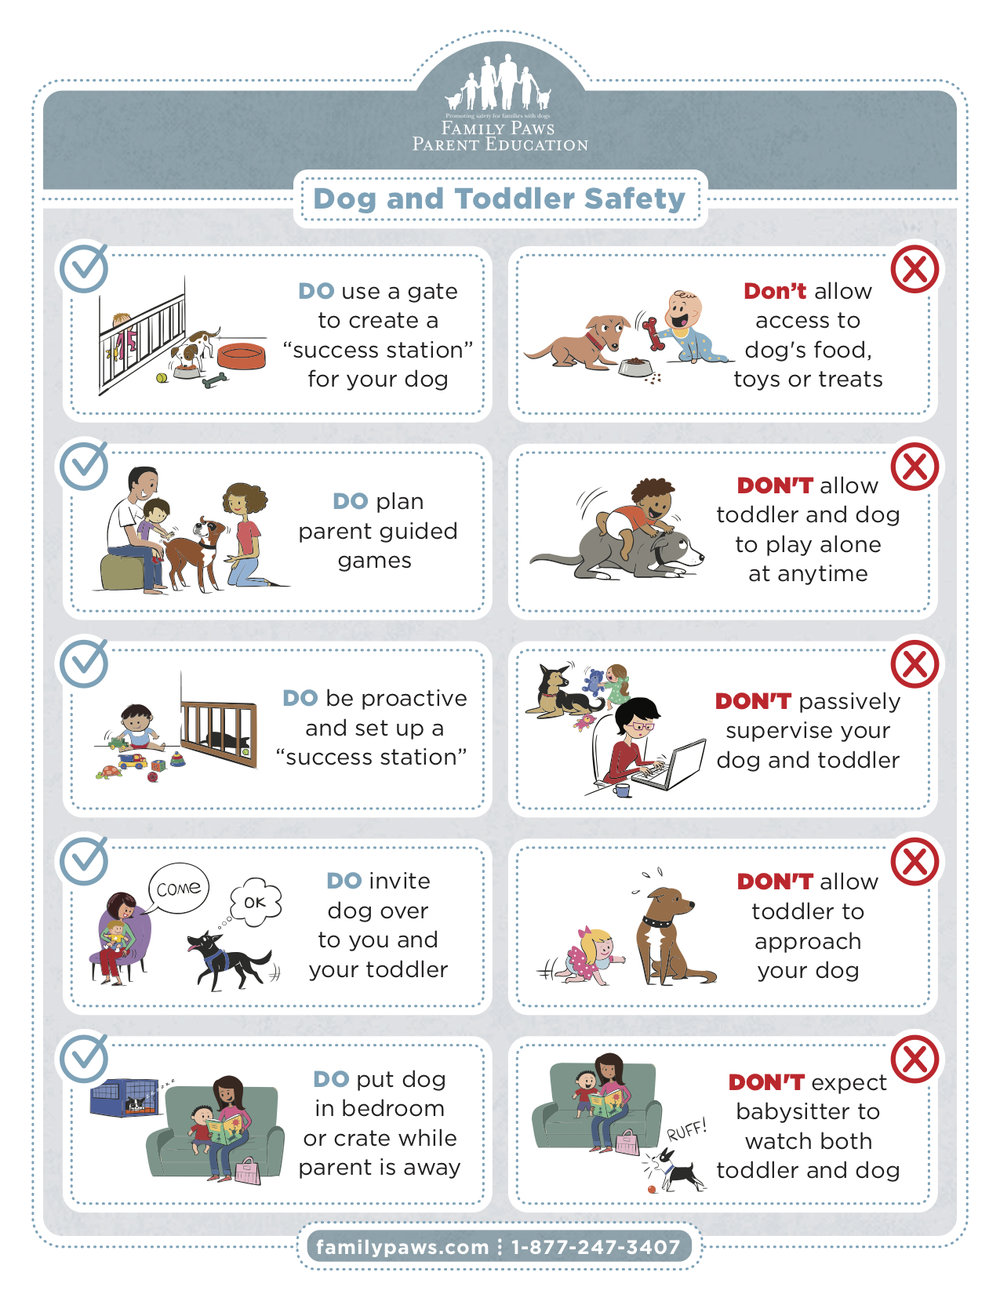 Family Paws Dog and Toddler Safety.jpg